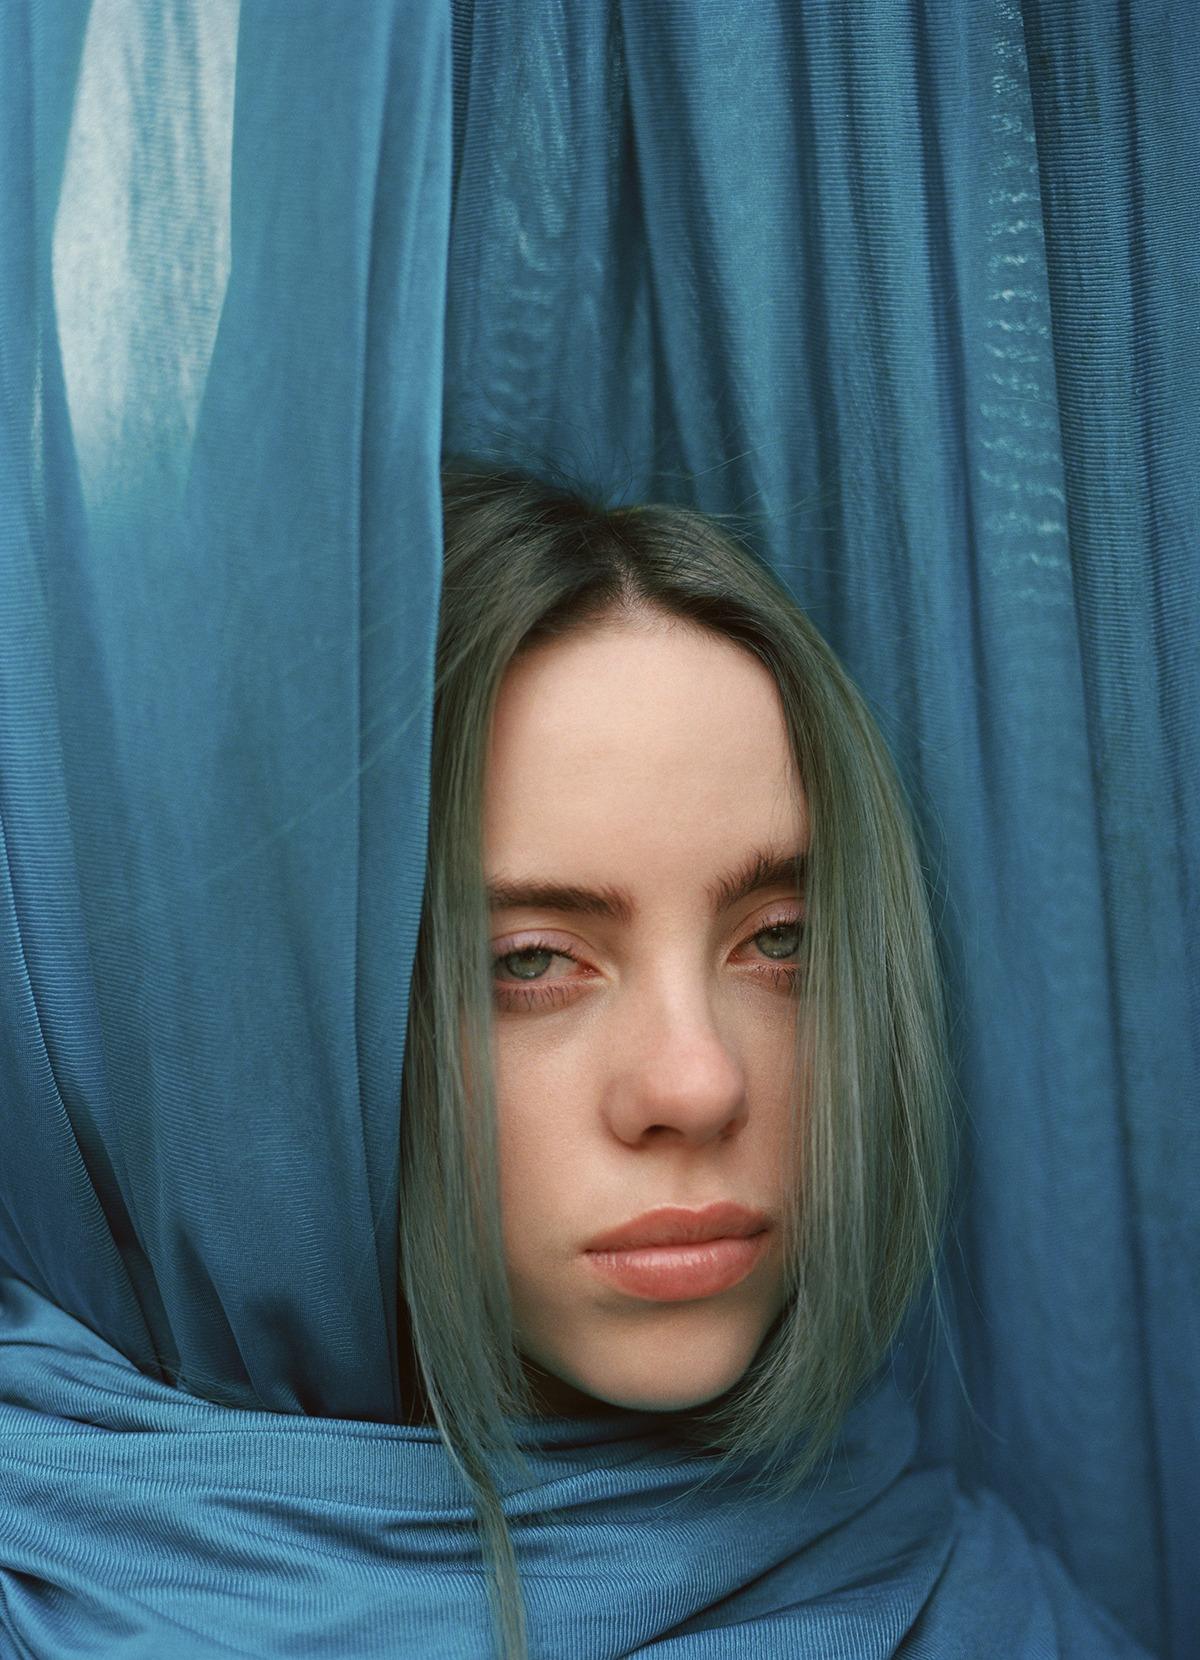 https://dep.com.vn/wp-content/uploads/2019/04/kham-pha-Billie-Eilish-3.jpg